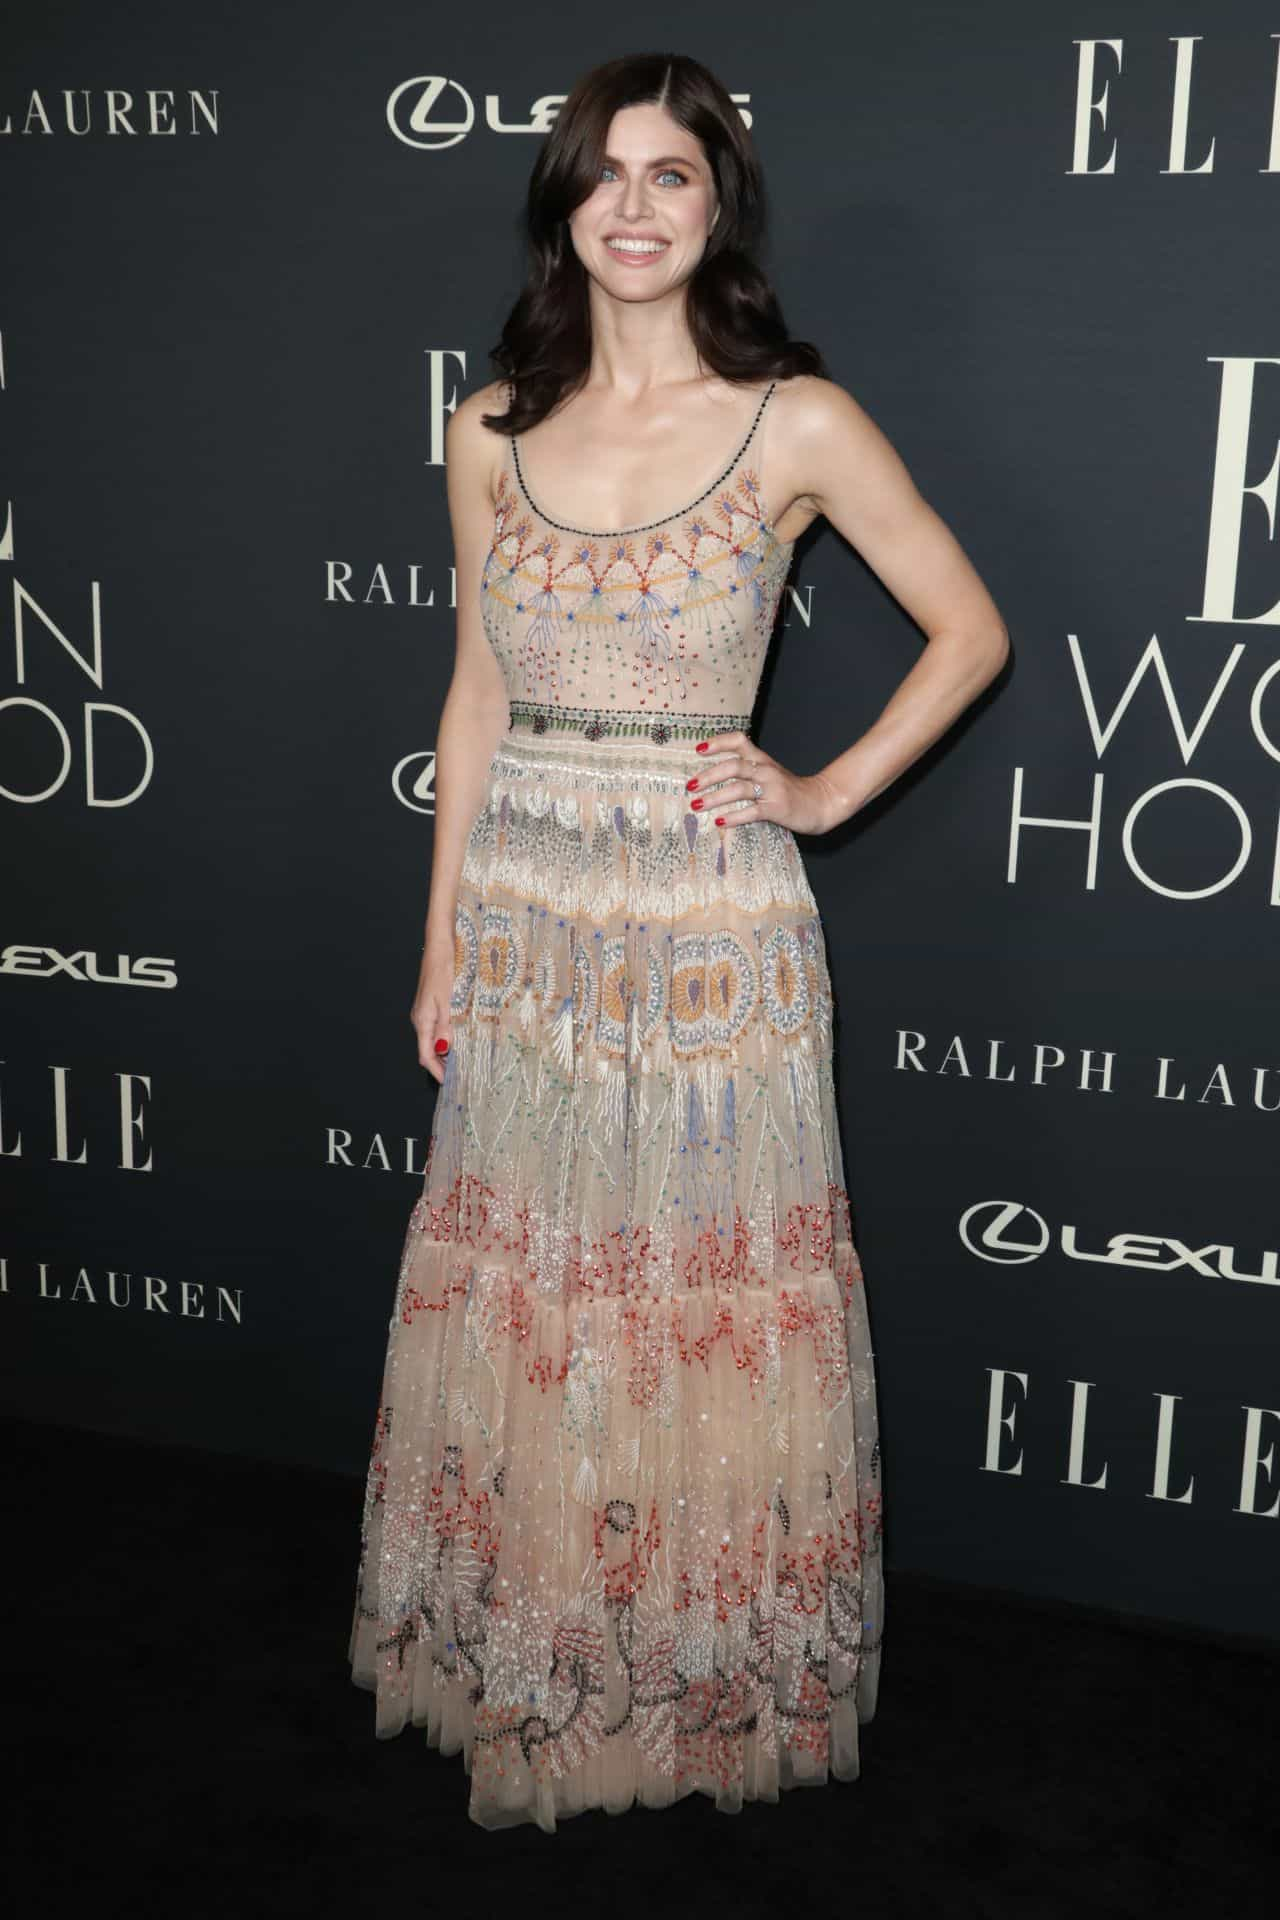 Alexandra Daddario Shines in Dior Dress at Elle Women in Hollywood Event